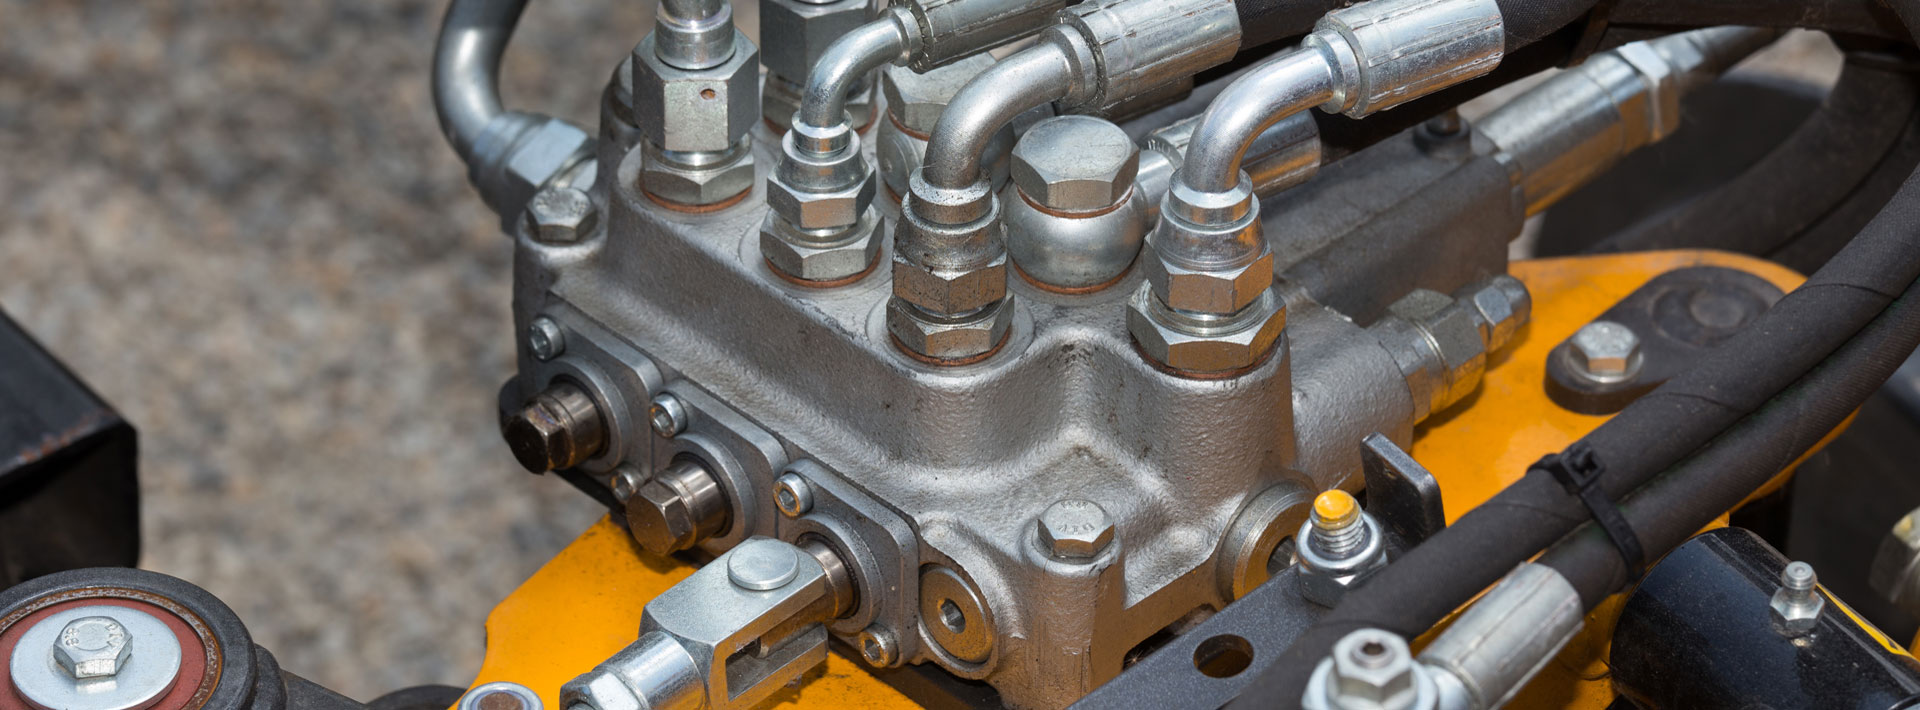 Hydraulic Repair Services for Rebuilds and Remanufacture